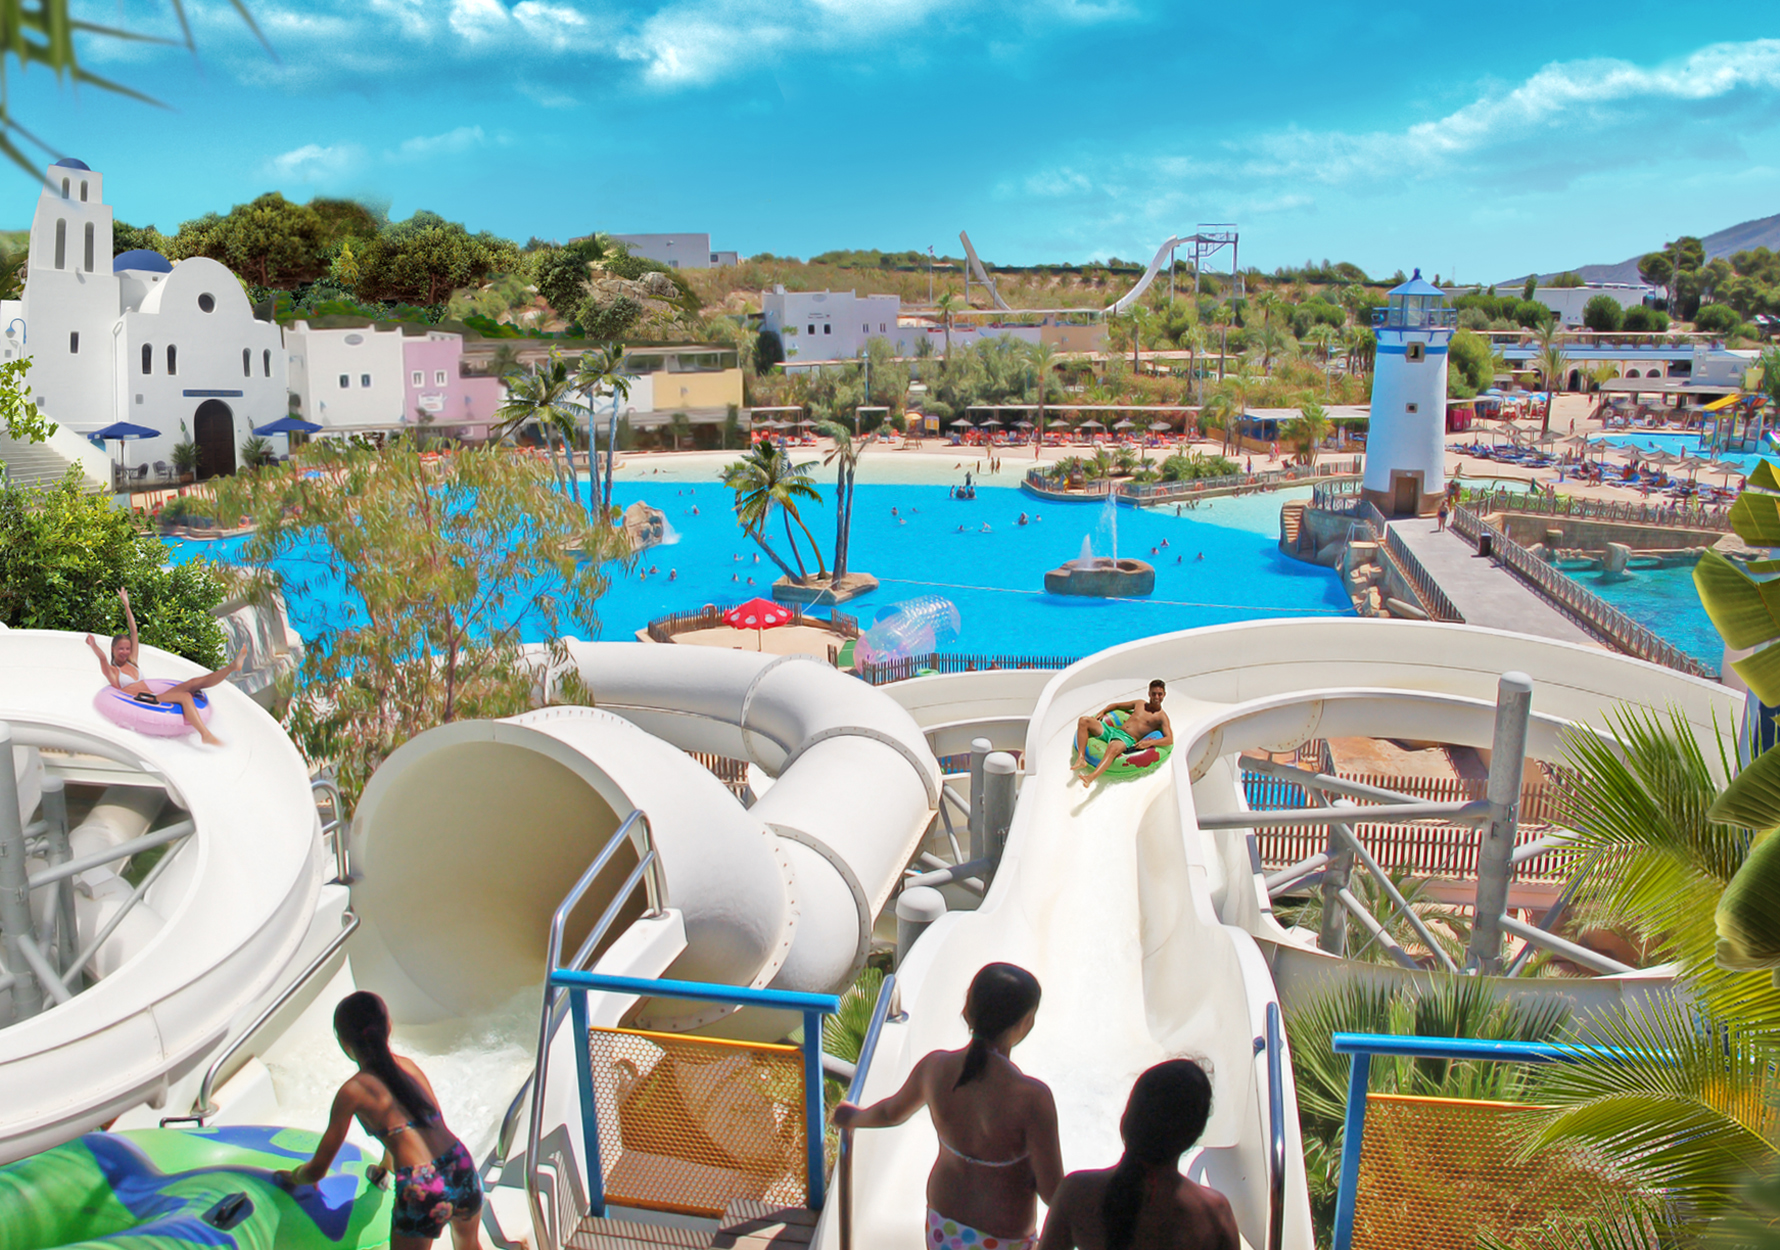 Terra & Aqua Natura +Transport +Lunch-Park Tickets